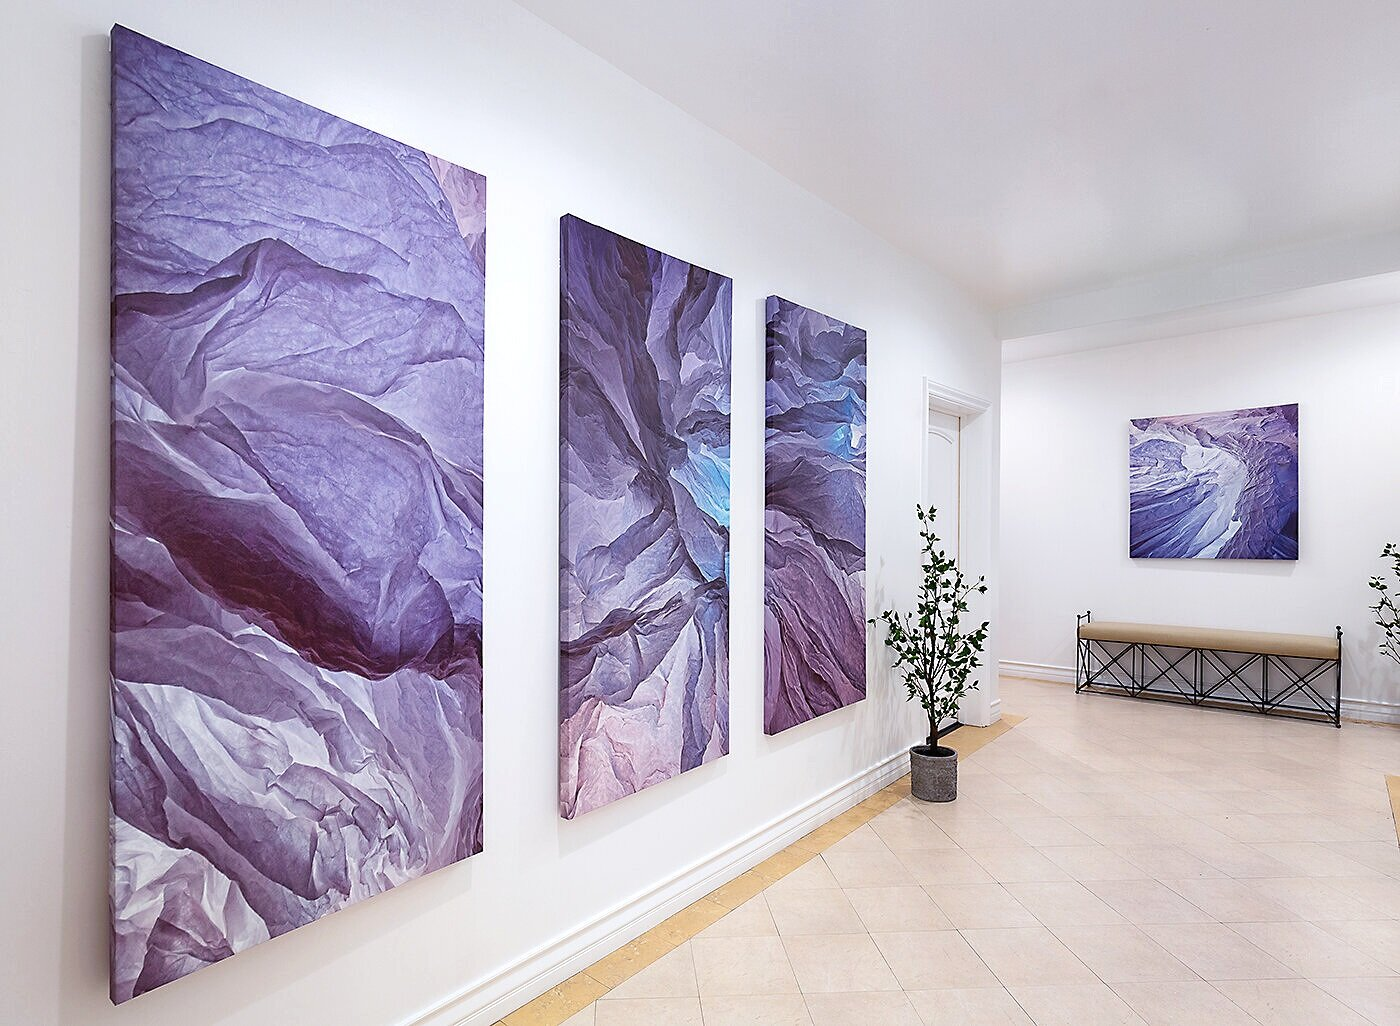 New:   Ceremonial Hallways,  2019. Canvas panels, 6'x4' at The Classic, Beverly Hills, CA.